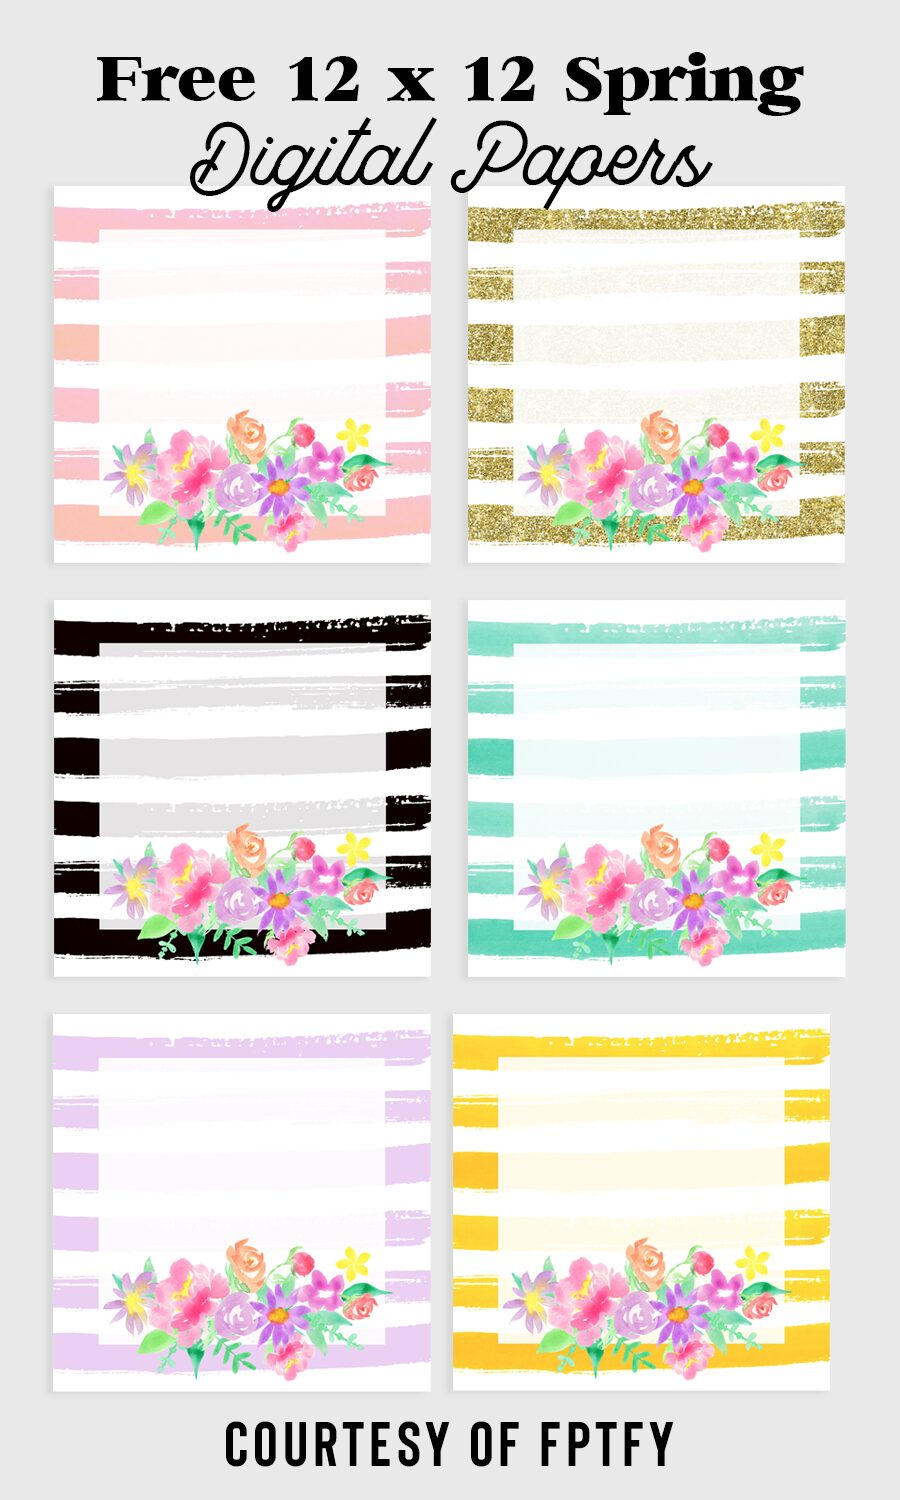 Spring Flowers Digital Paper Backgrounds